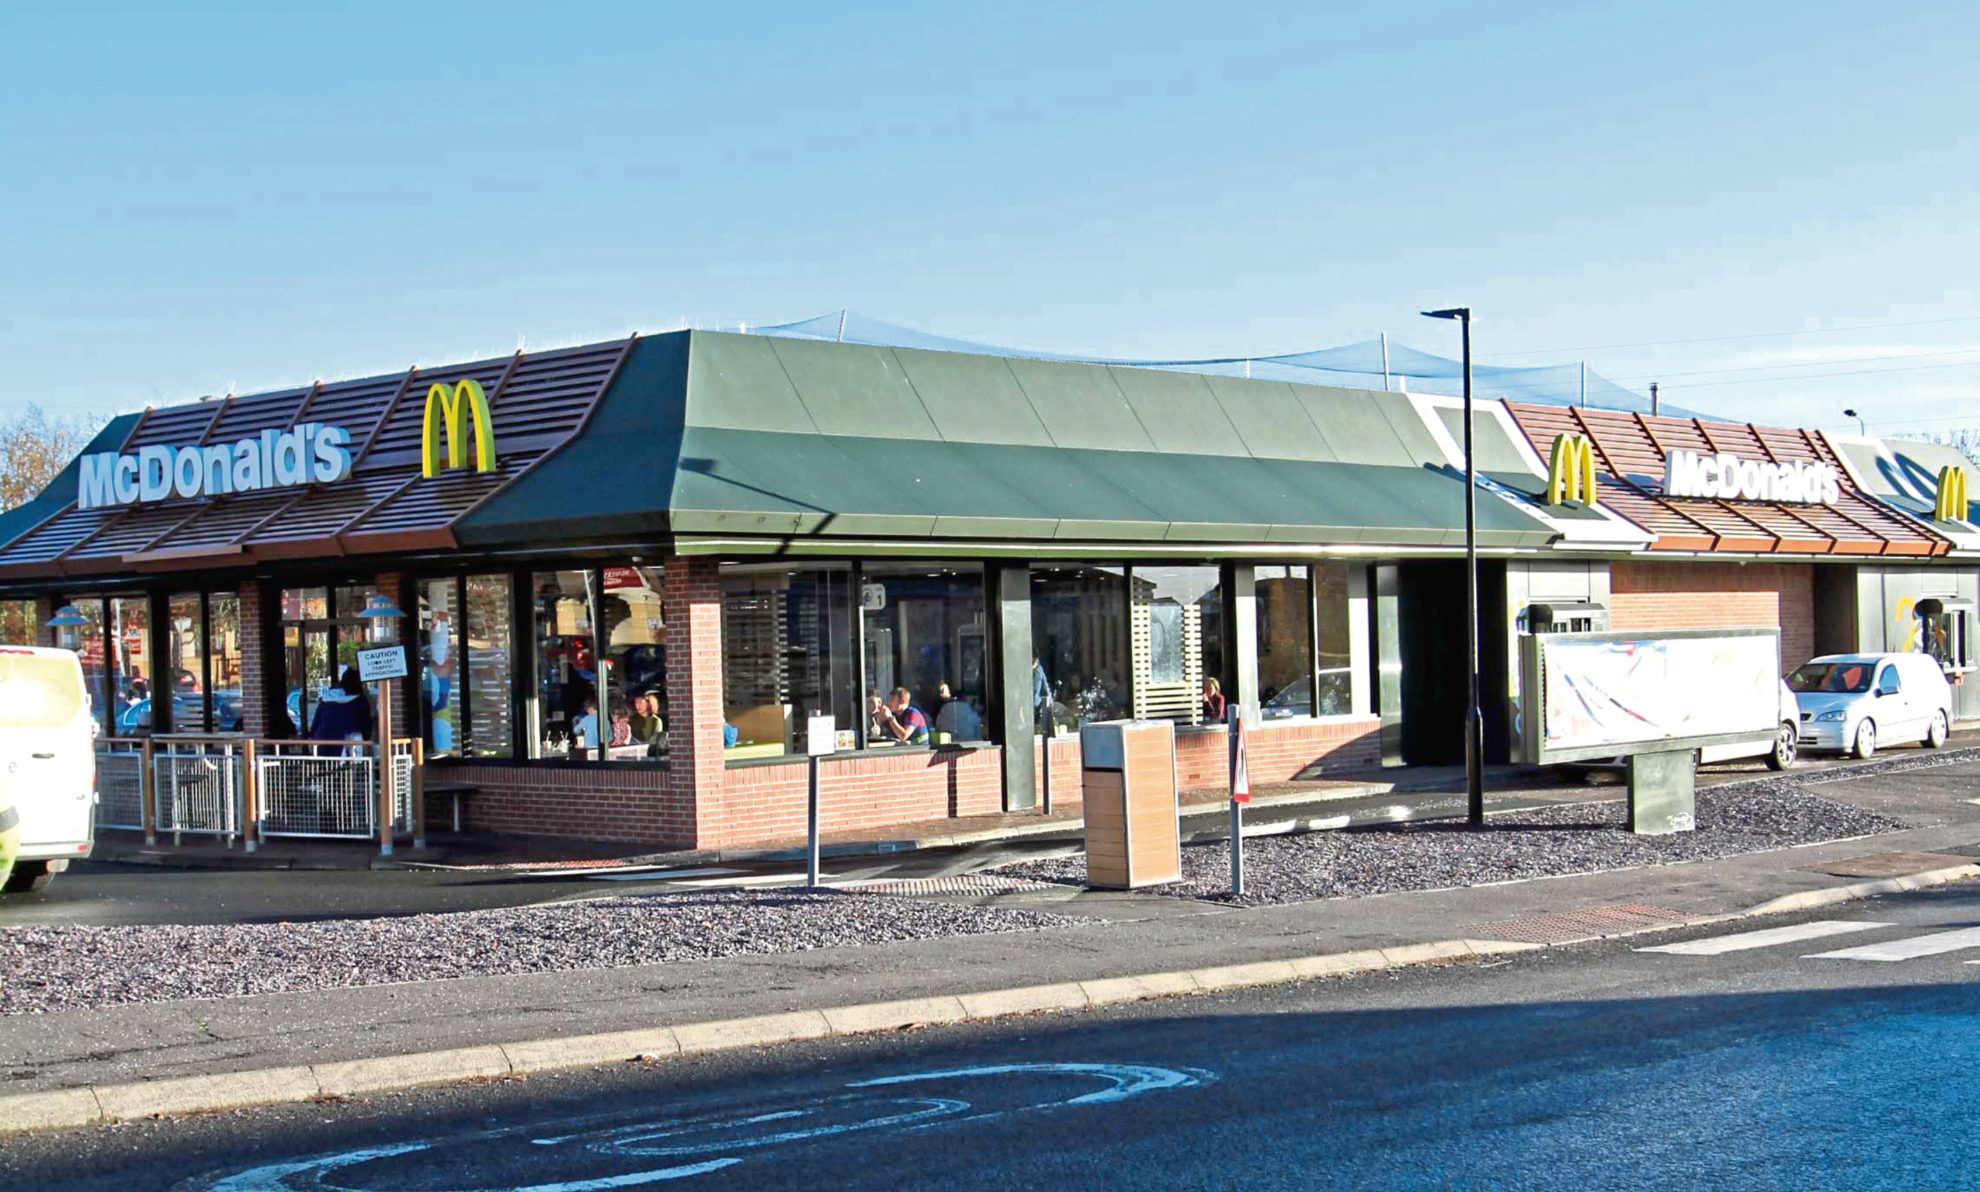 McDonald's, Camperdown Leisure Park.